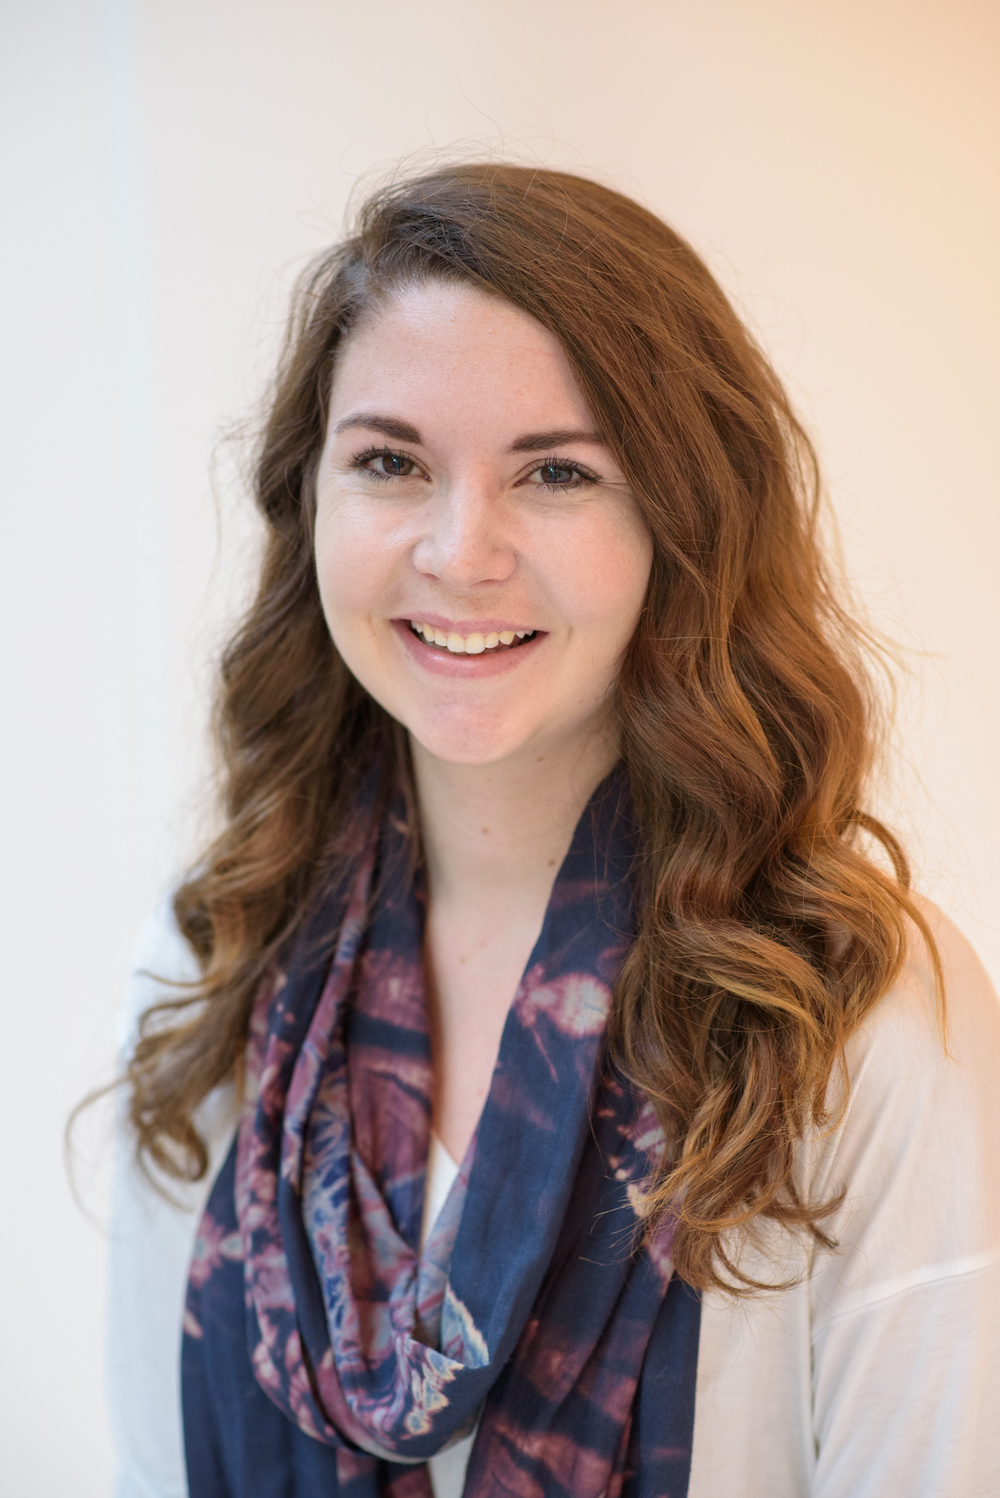 Emily Snider, U.S. Sales & Strategic Partnerships Coordinator